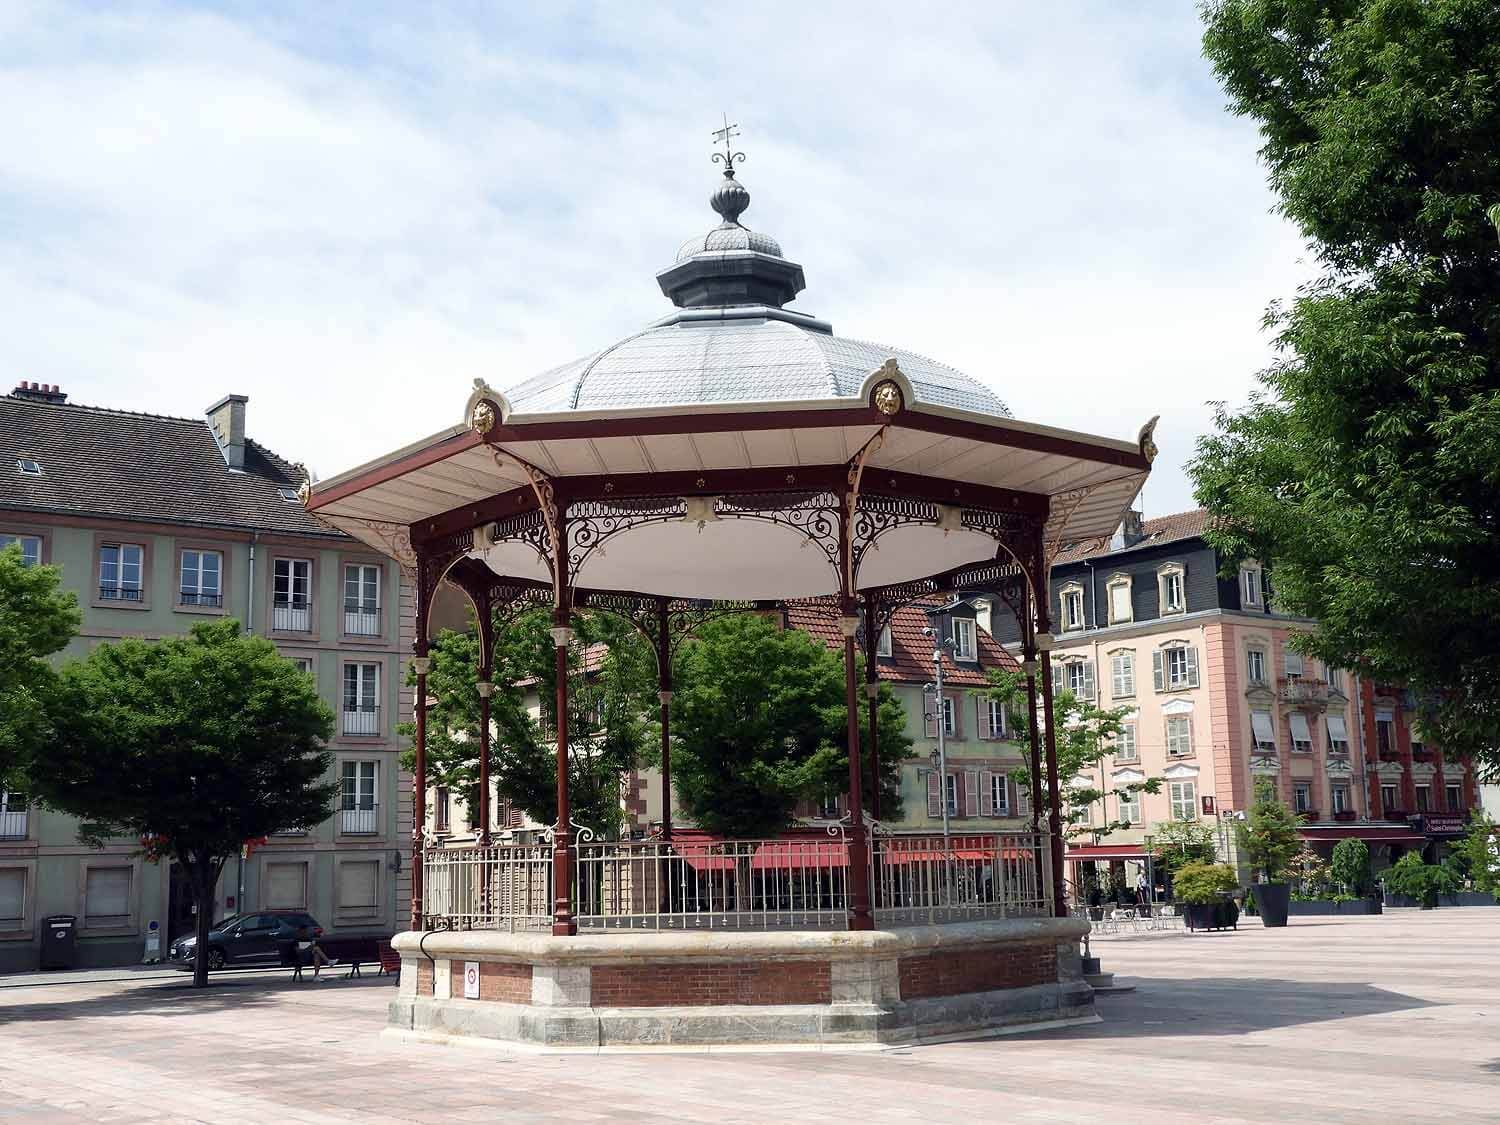 france-belfort-town-square-gazeebo.JPG